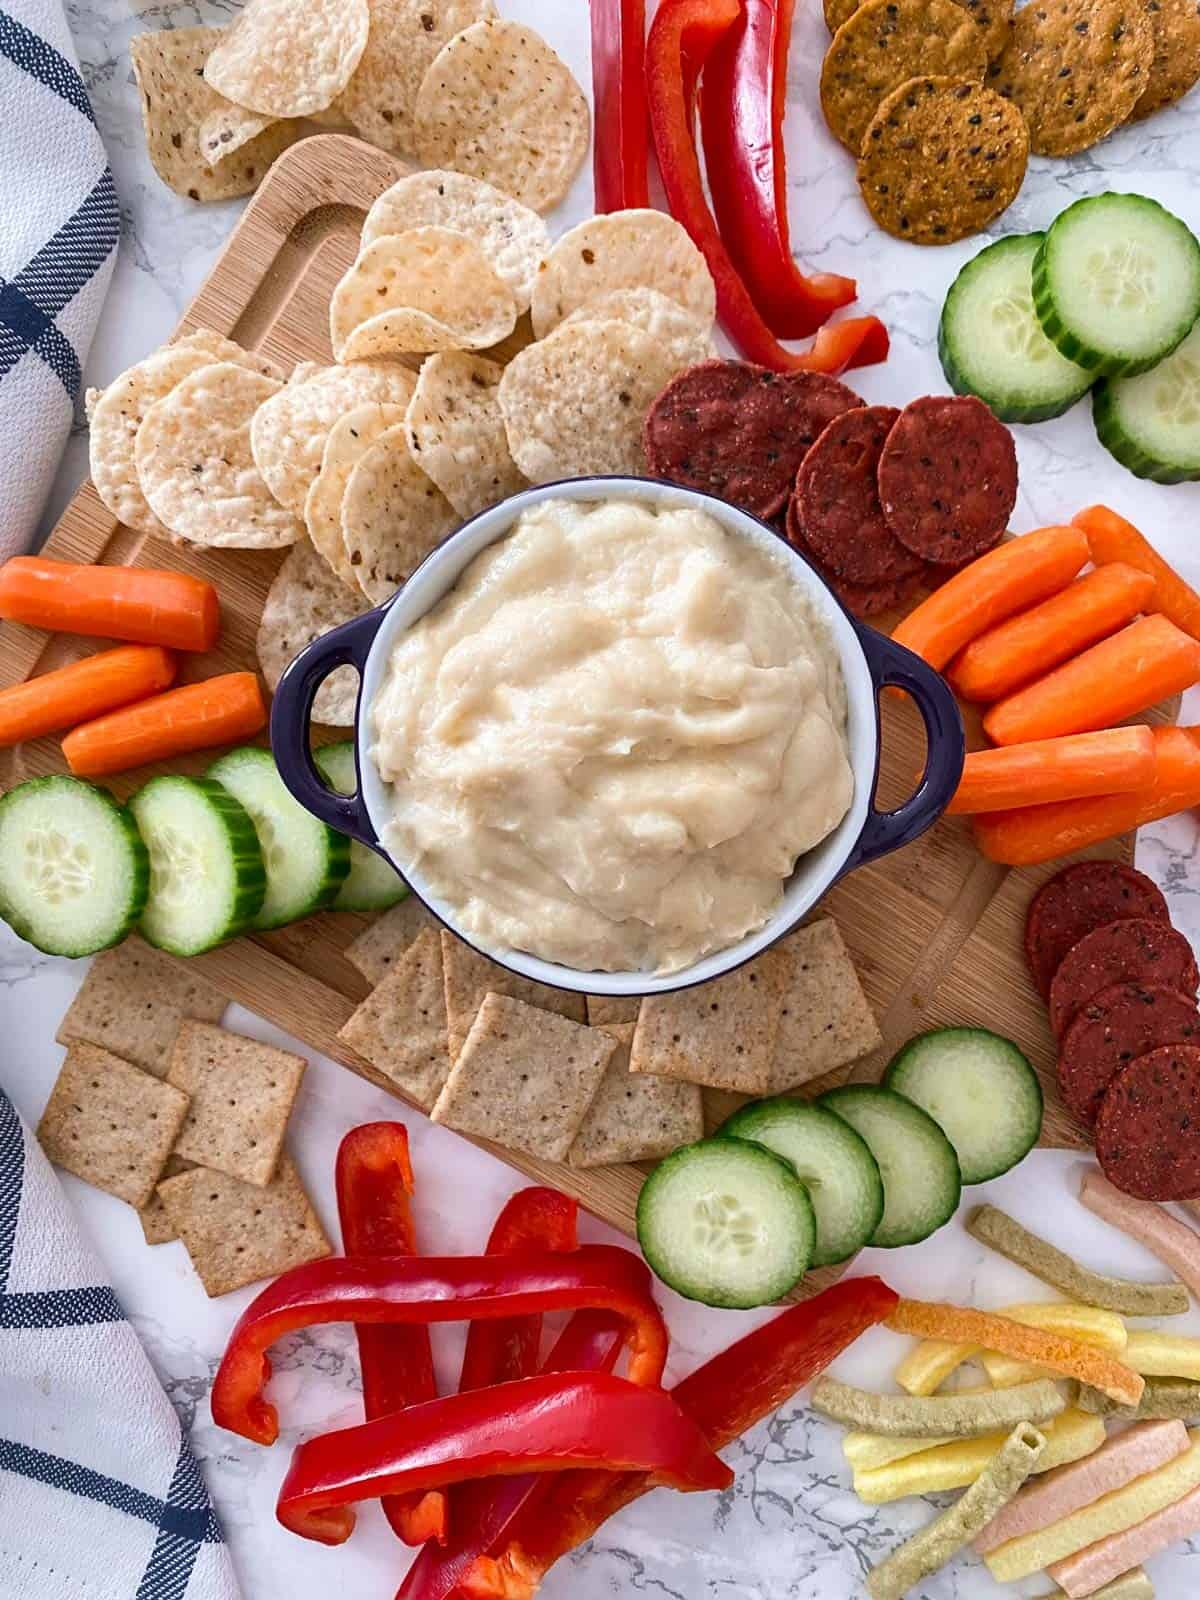 Bowl of cheese dip with chips, crackers and veggies scattered around it.